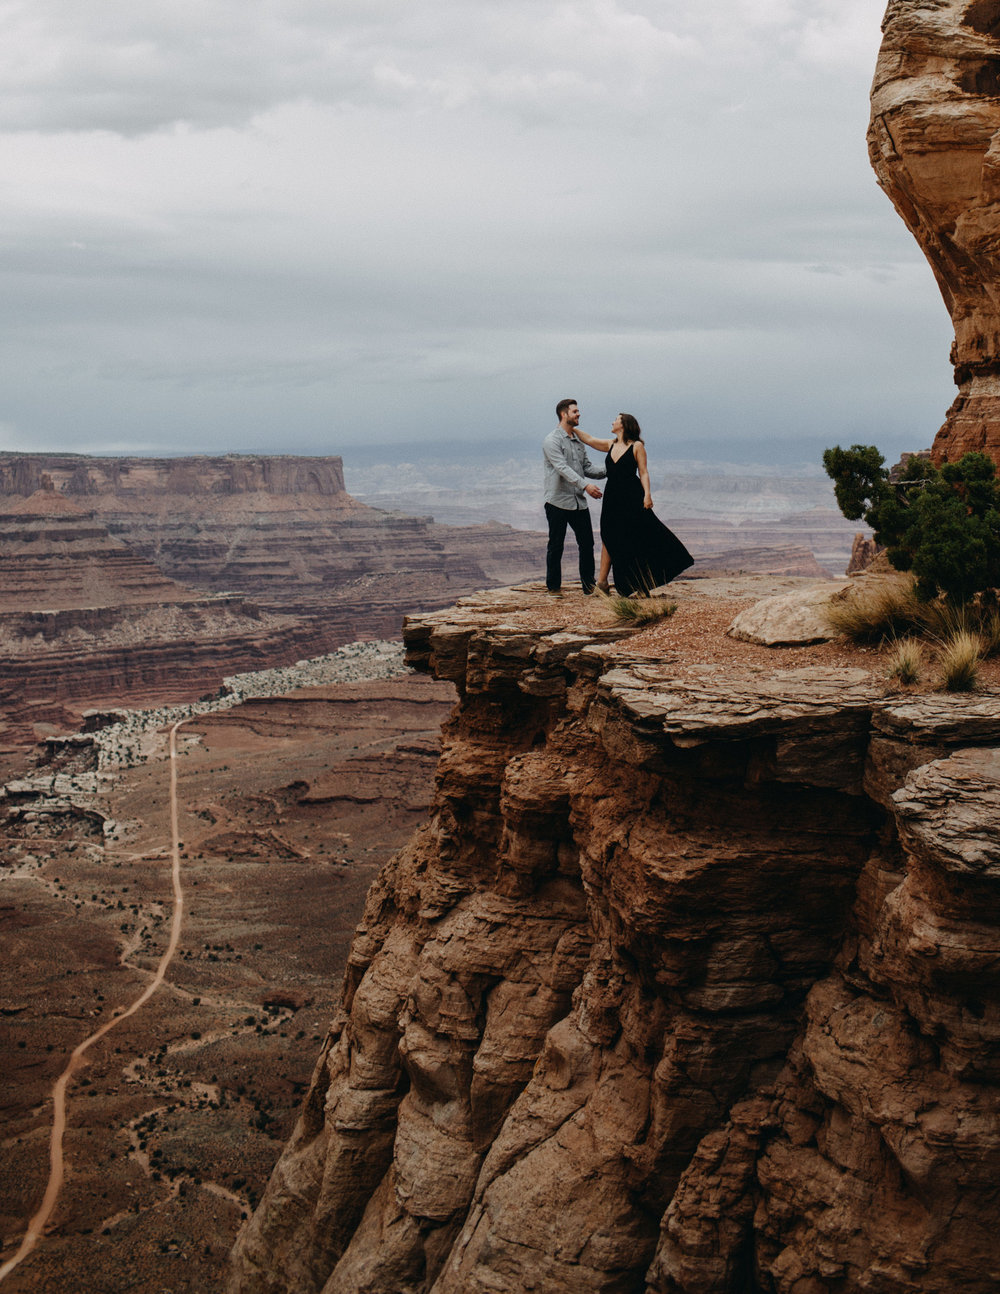 Epic adventure engagements on a cliffside in the desert | Elope in Canyonlands | Moab Elopement and Engagement Photographer Kandice Breinholt